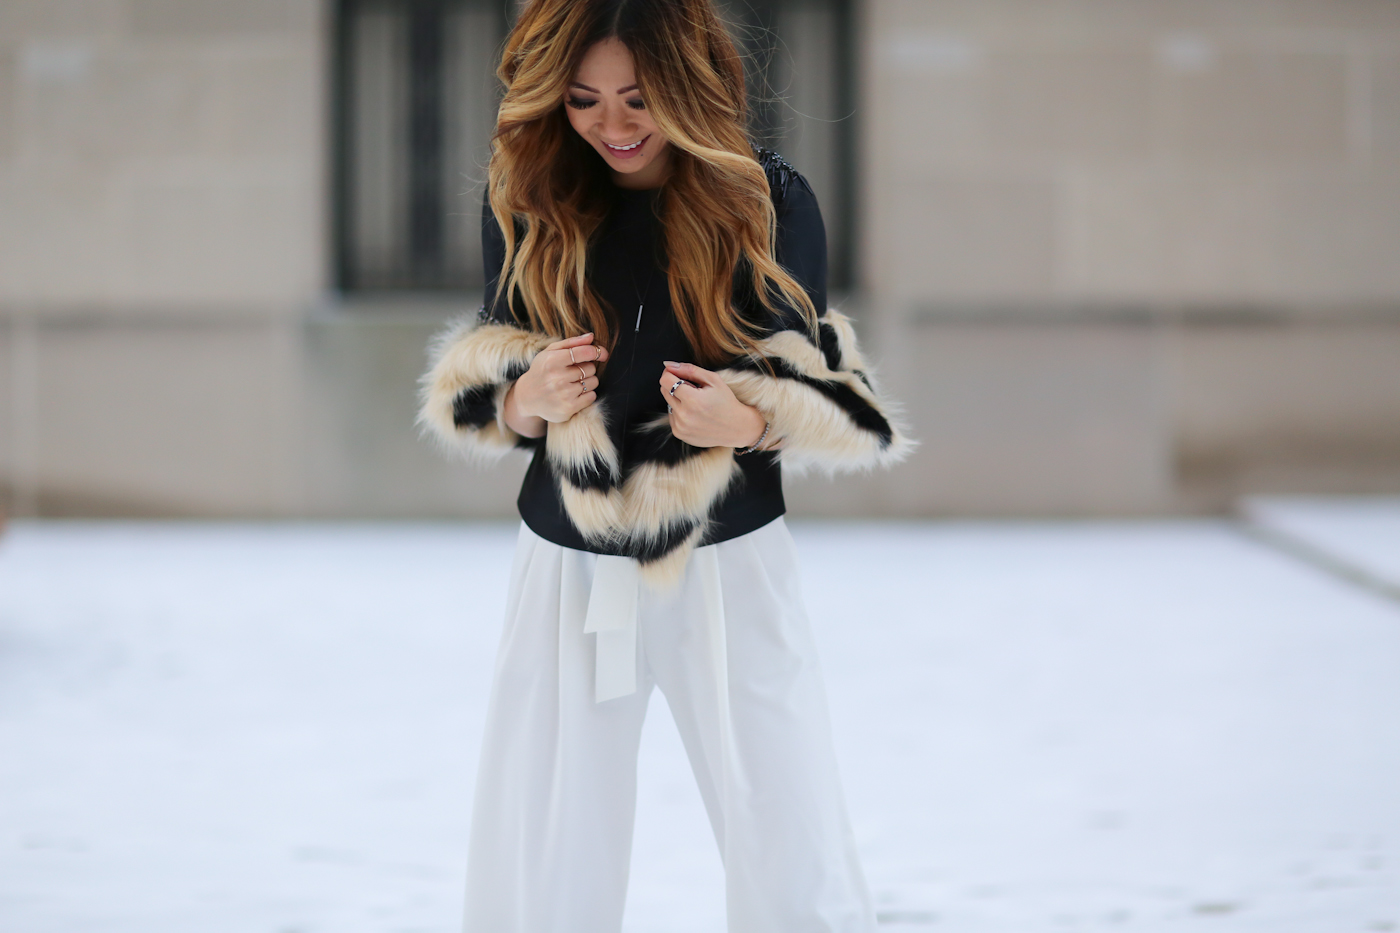 theoutnet beaded top and wide leg pants with faux fur shawl